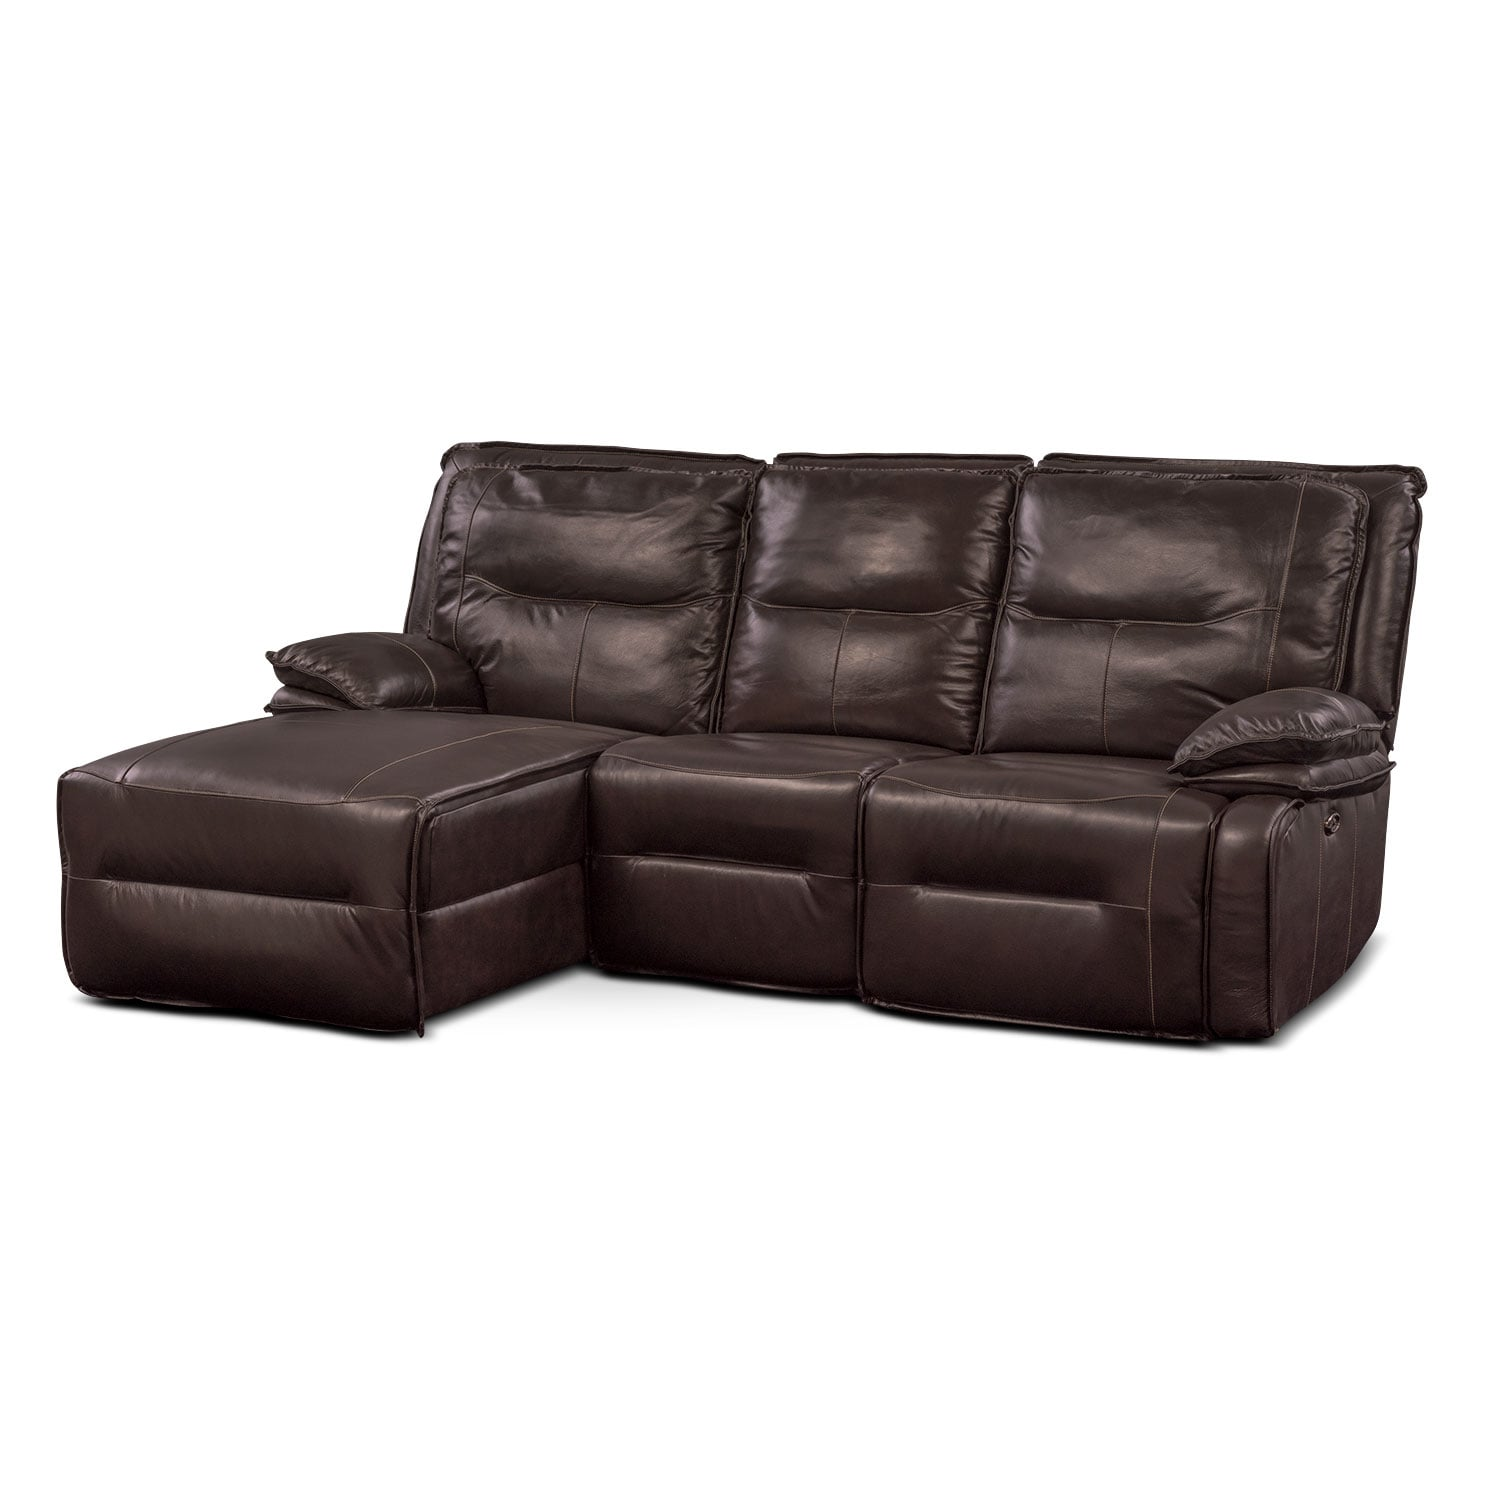 Nikki 3-Piece Power Reclining Sectional with Left-Facing Chaise - Brown